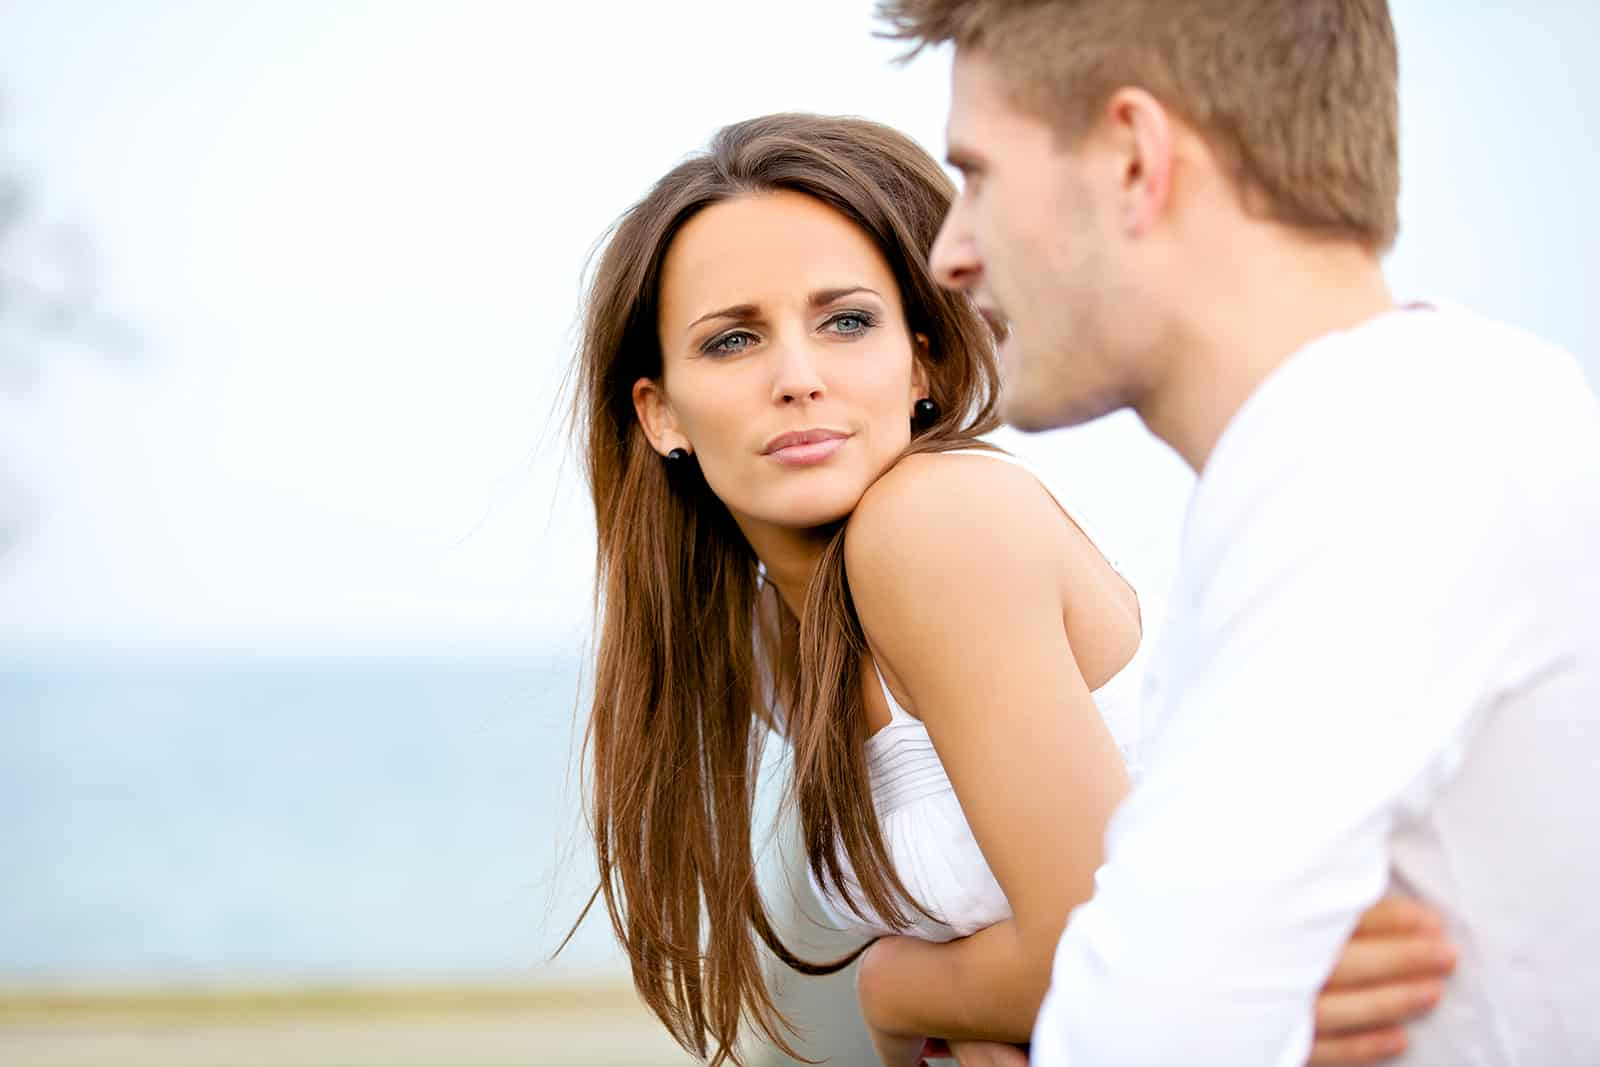 serious woman listening to a man while standing together outdoor